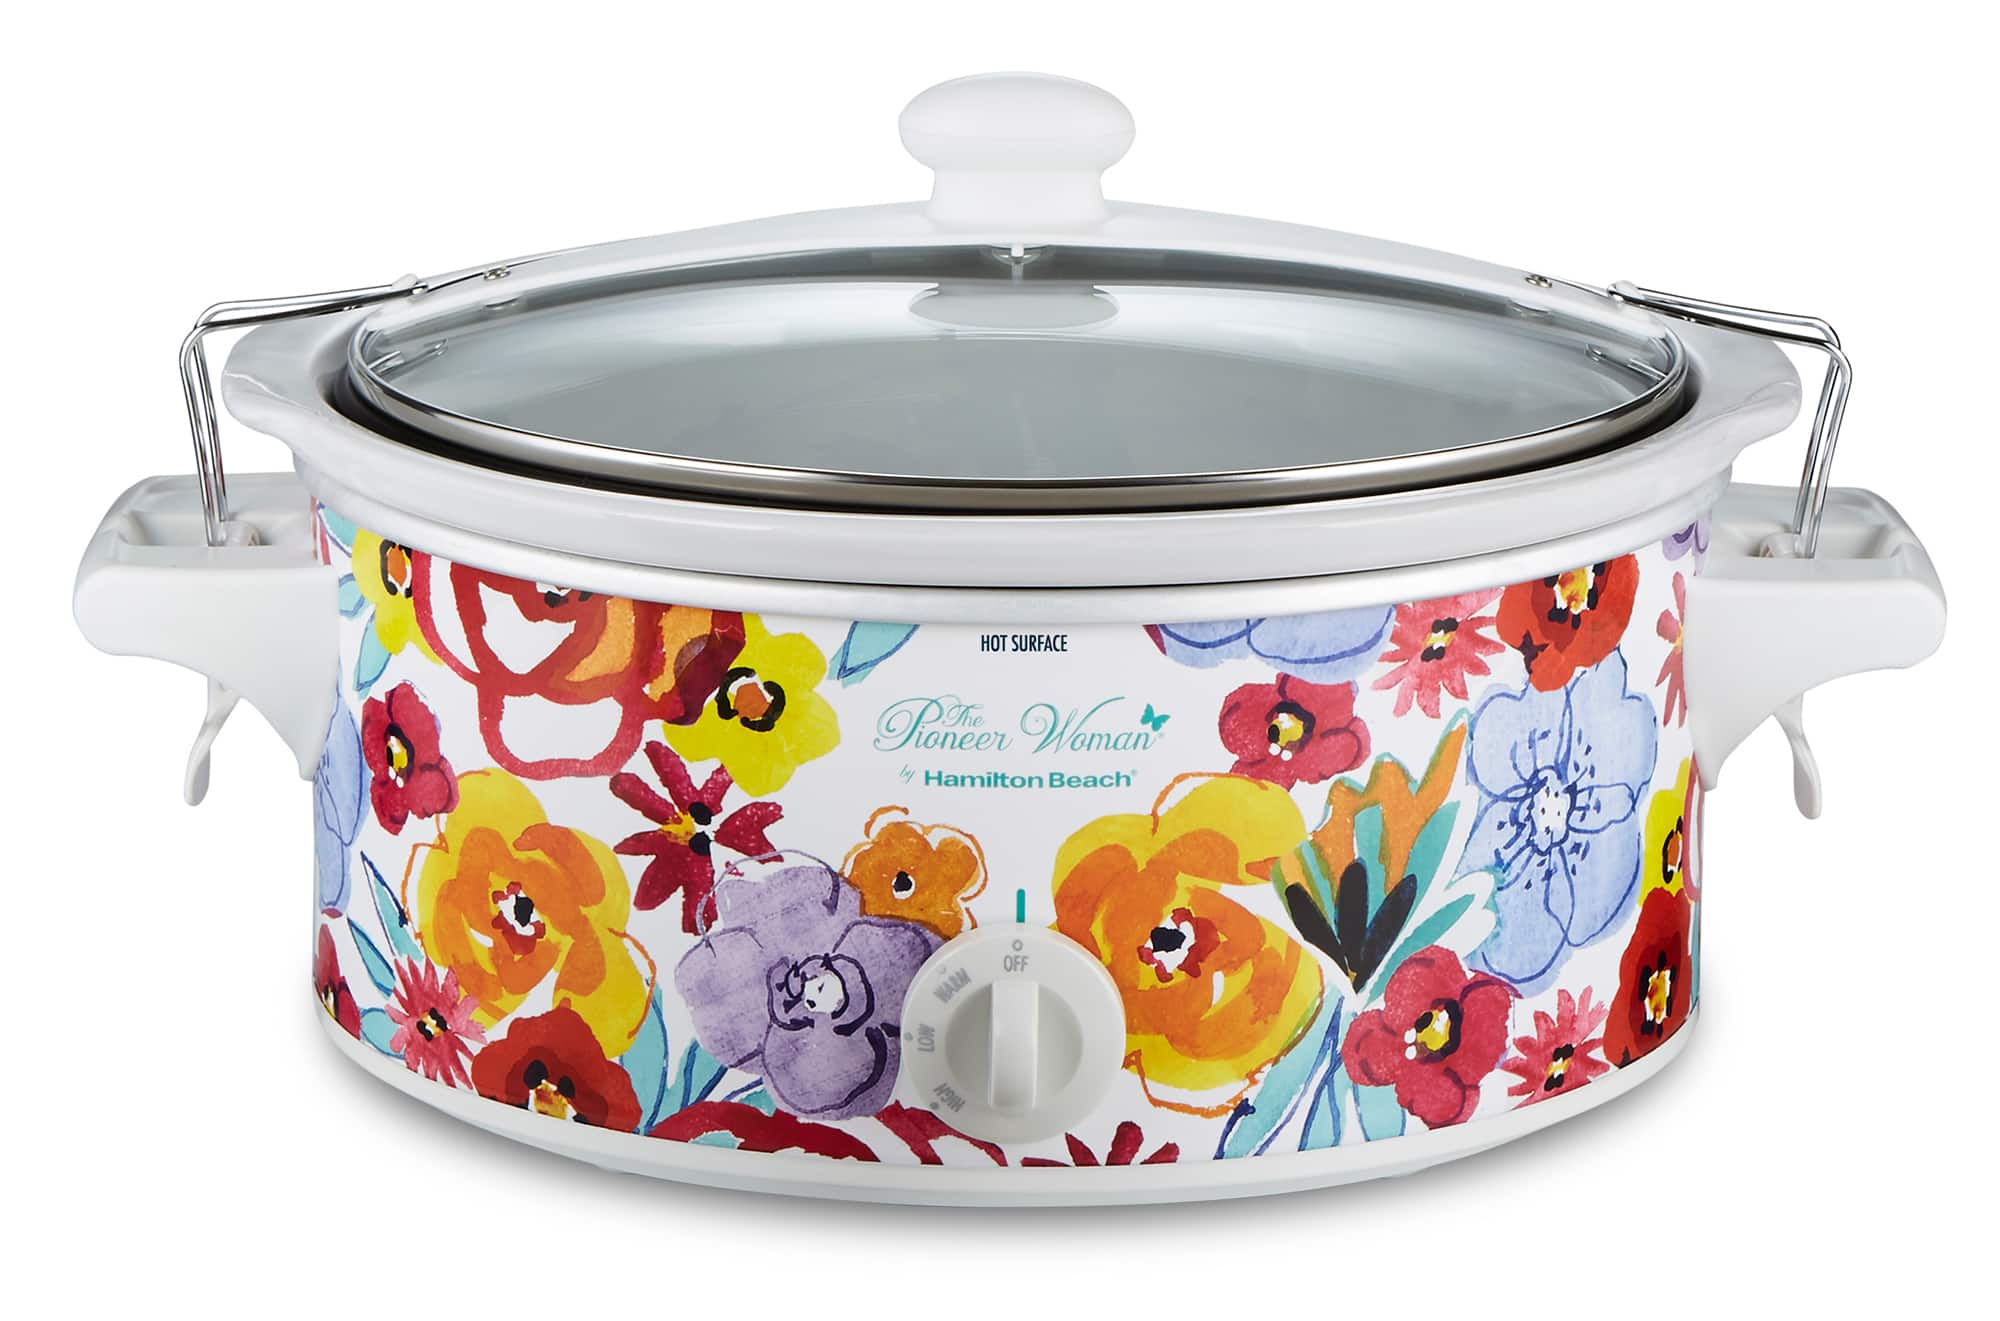 6-Quart The Pioneer Woman Portable Slow Cooker (Flea Market Floral) $25 + Free S&H w/ Walmart+ or $35+